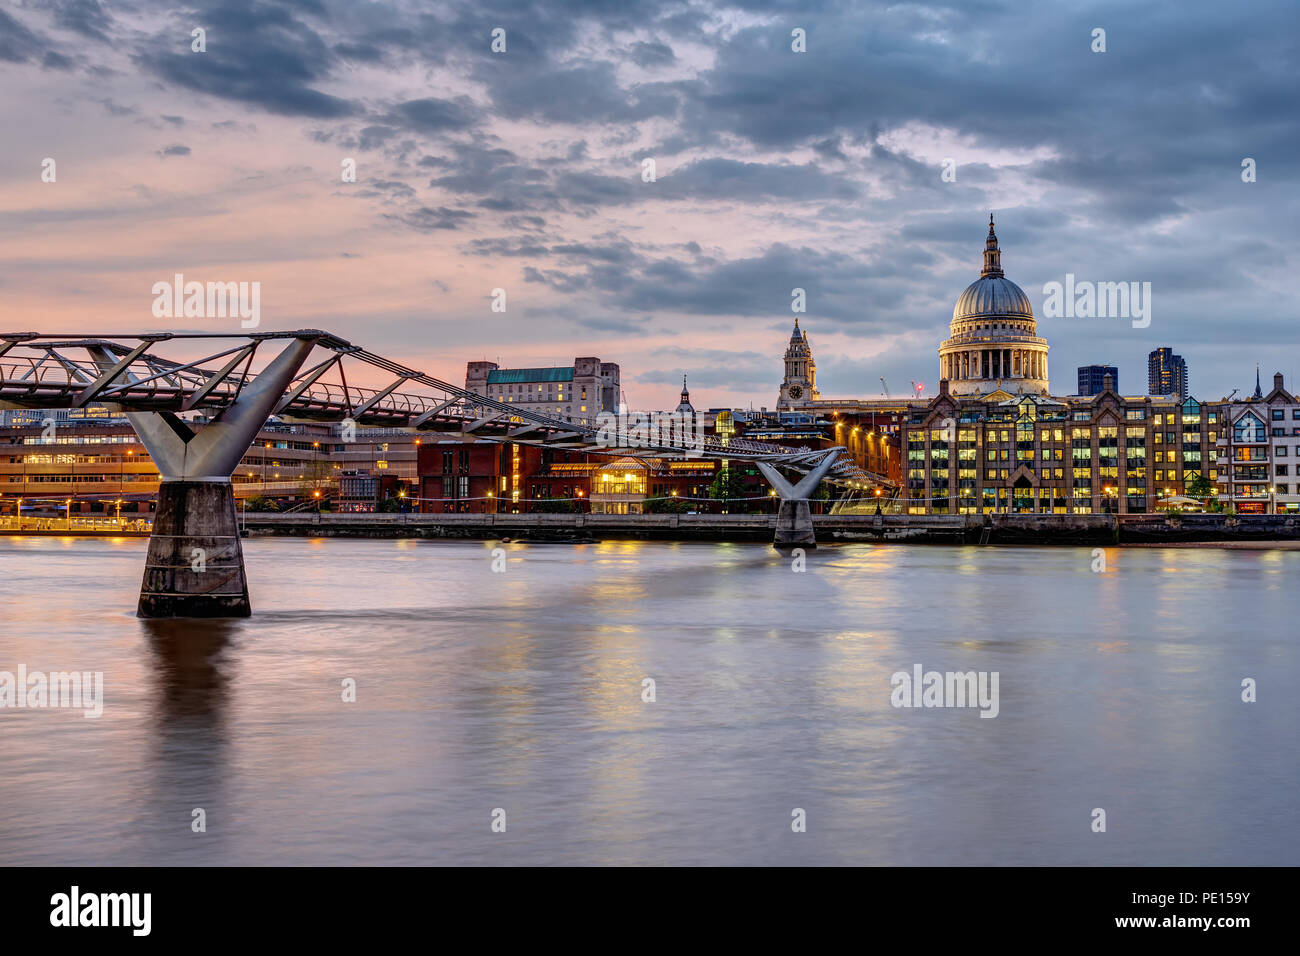 The Millennium Bridge and St. Paul's cathedral in London, UK, at sunset - Stock Image